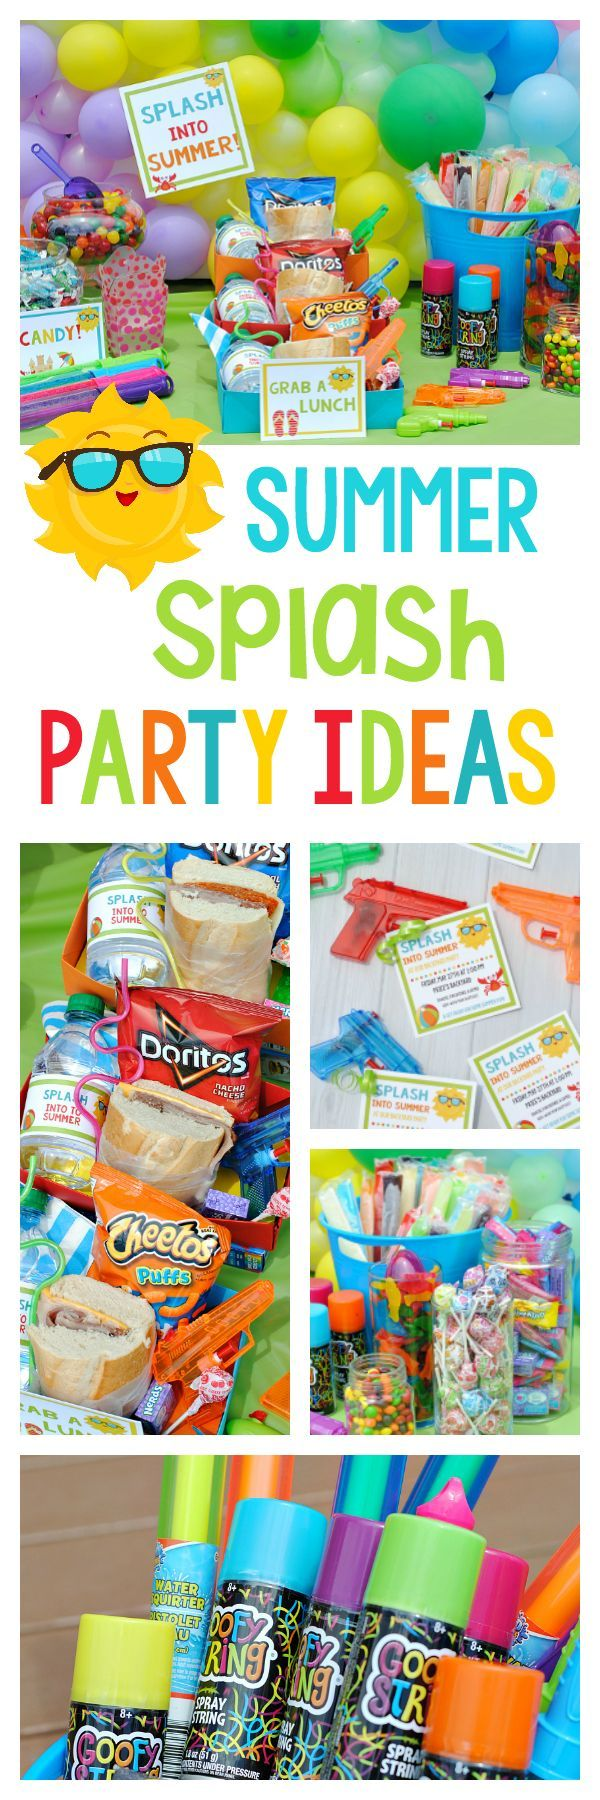 Water Party Ideas | Summer Splash Party - super fun outdoor activities for kids